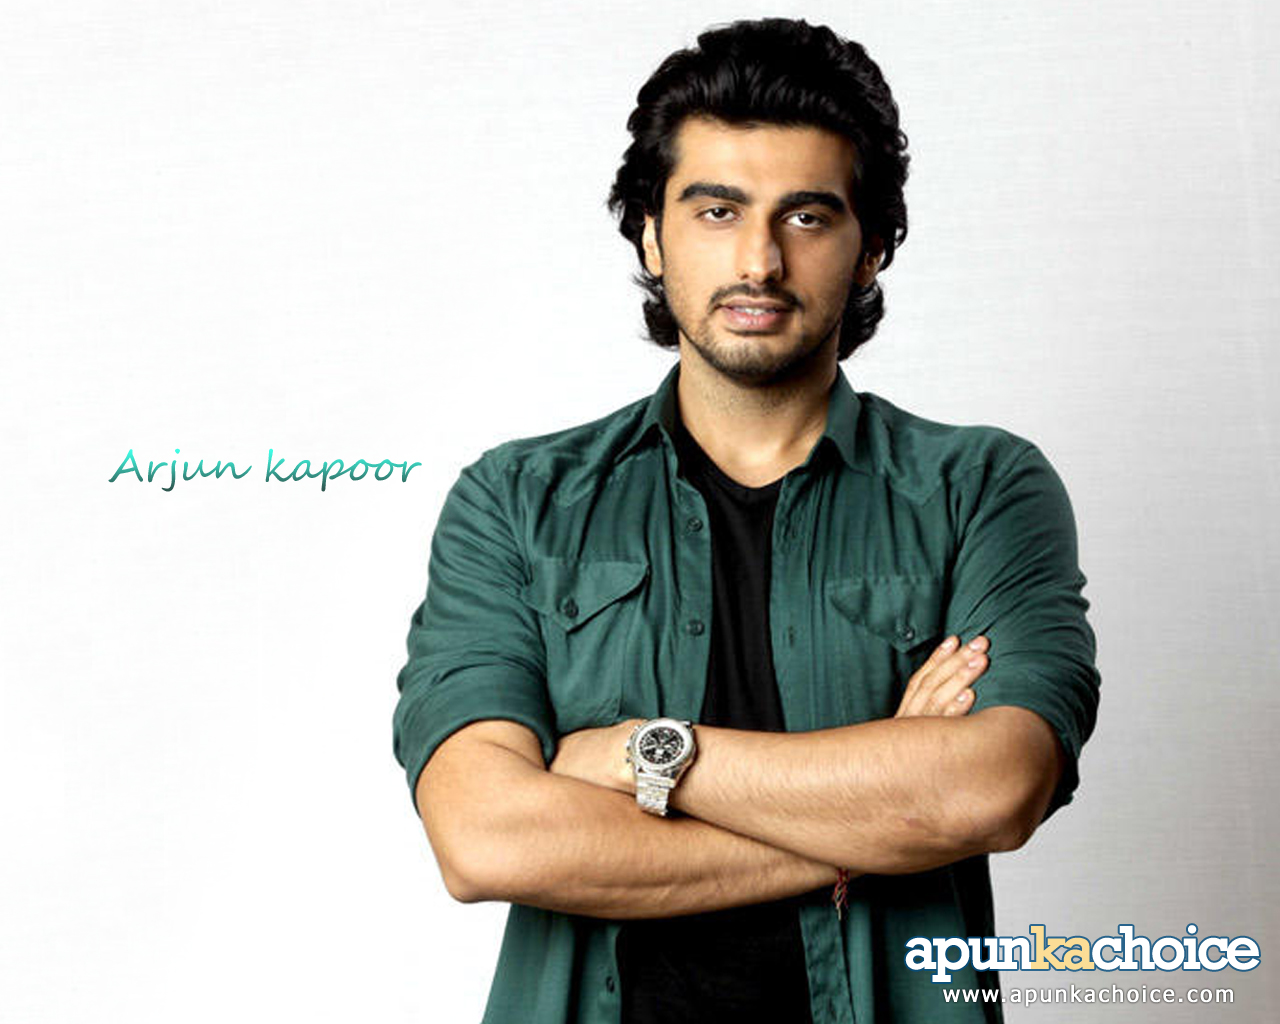 Arjun Kapoor Wallpapers High Resolution and Quality Download 1280x1024